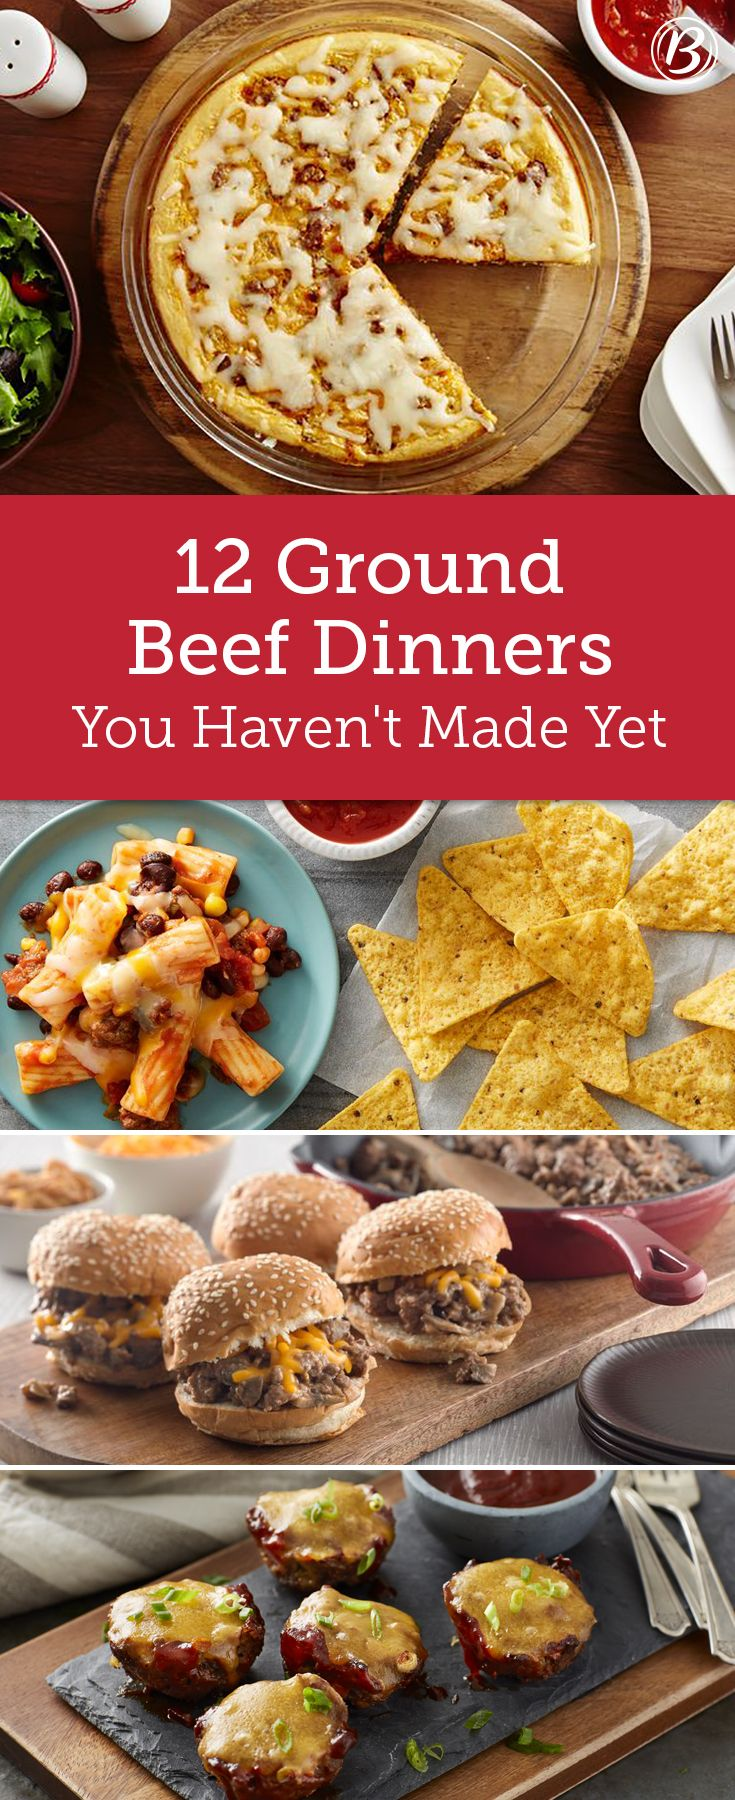 These recipes start with one of the most reliable proteins—ground beef—making them easy on the wallet and friendly for the entire family! From hearty twists on classics like Steakhouse Sloppy Joes to brand-new ideas like Mexican Beef Tater Tot Pies, save these ideas for when you've stocked up and need inspiration.